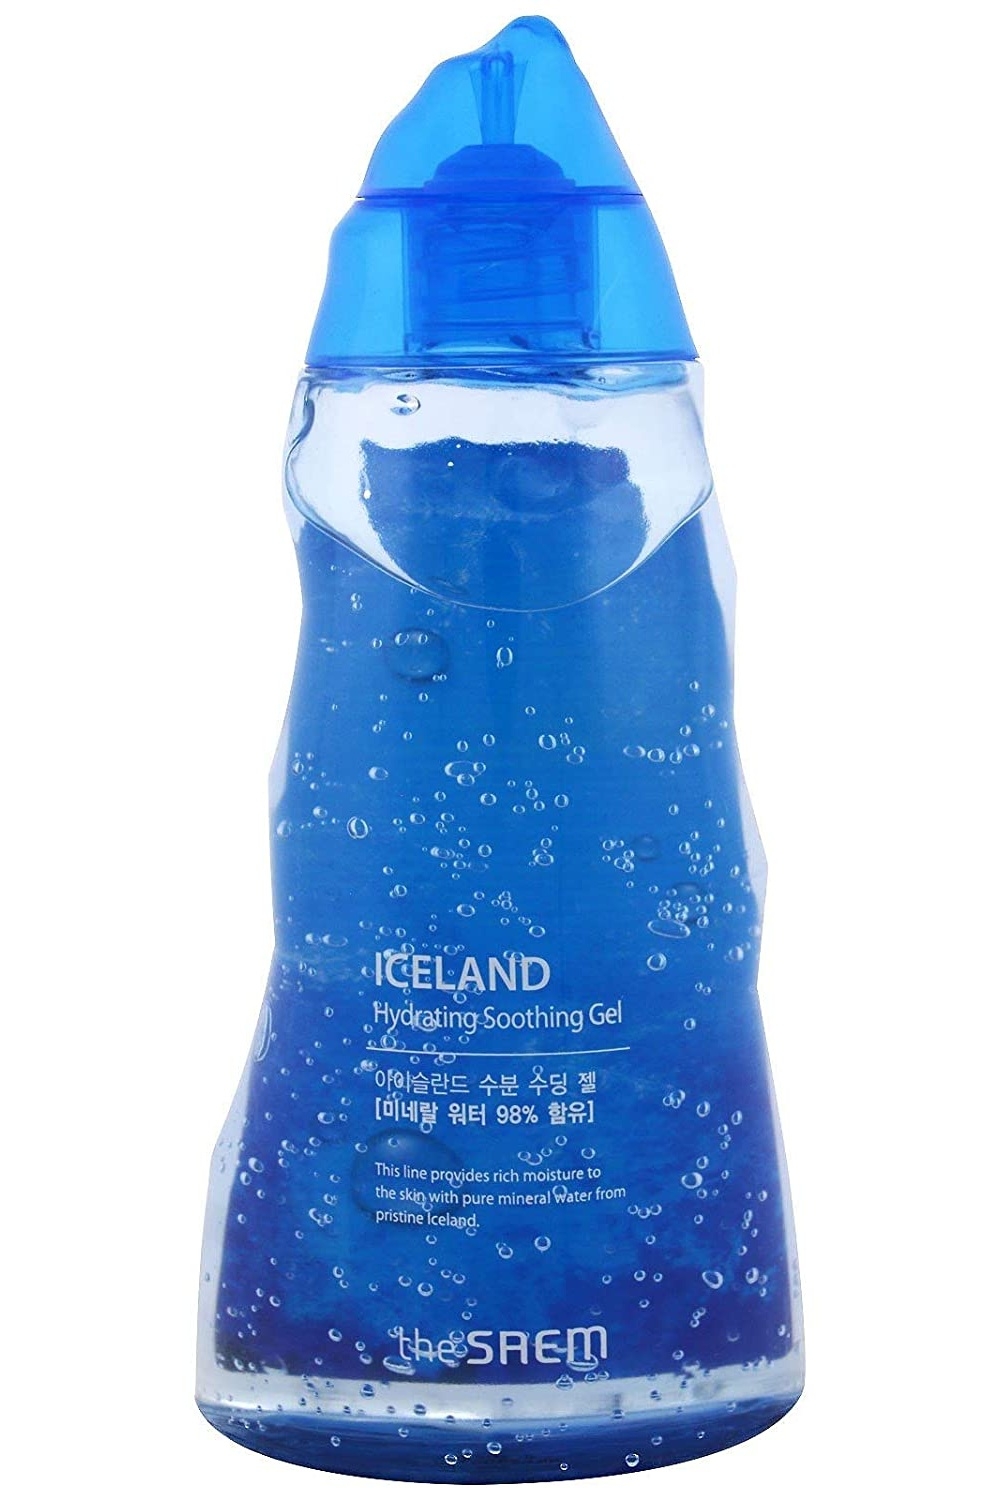 Korean Products To Save Your Skin From The Heat: The Saem Iceland Hydrating Soothing Gel